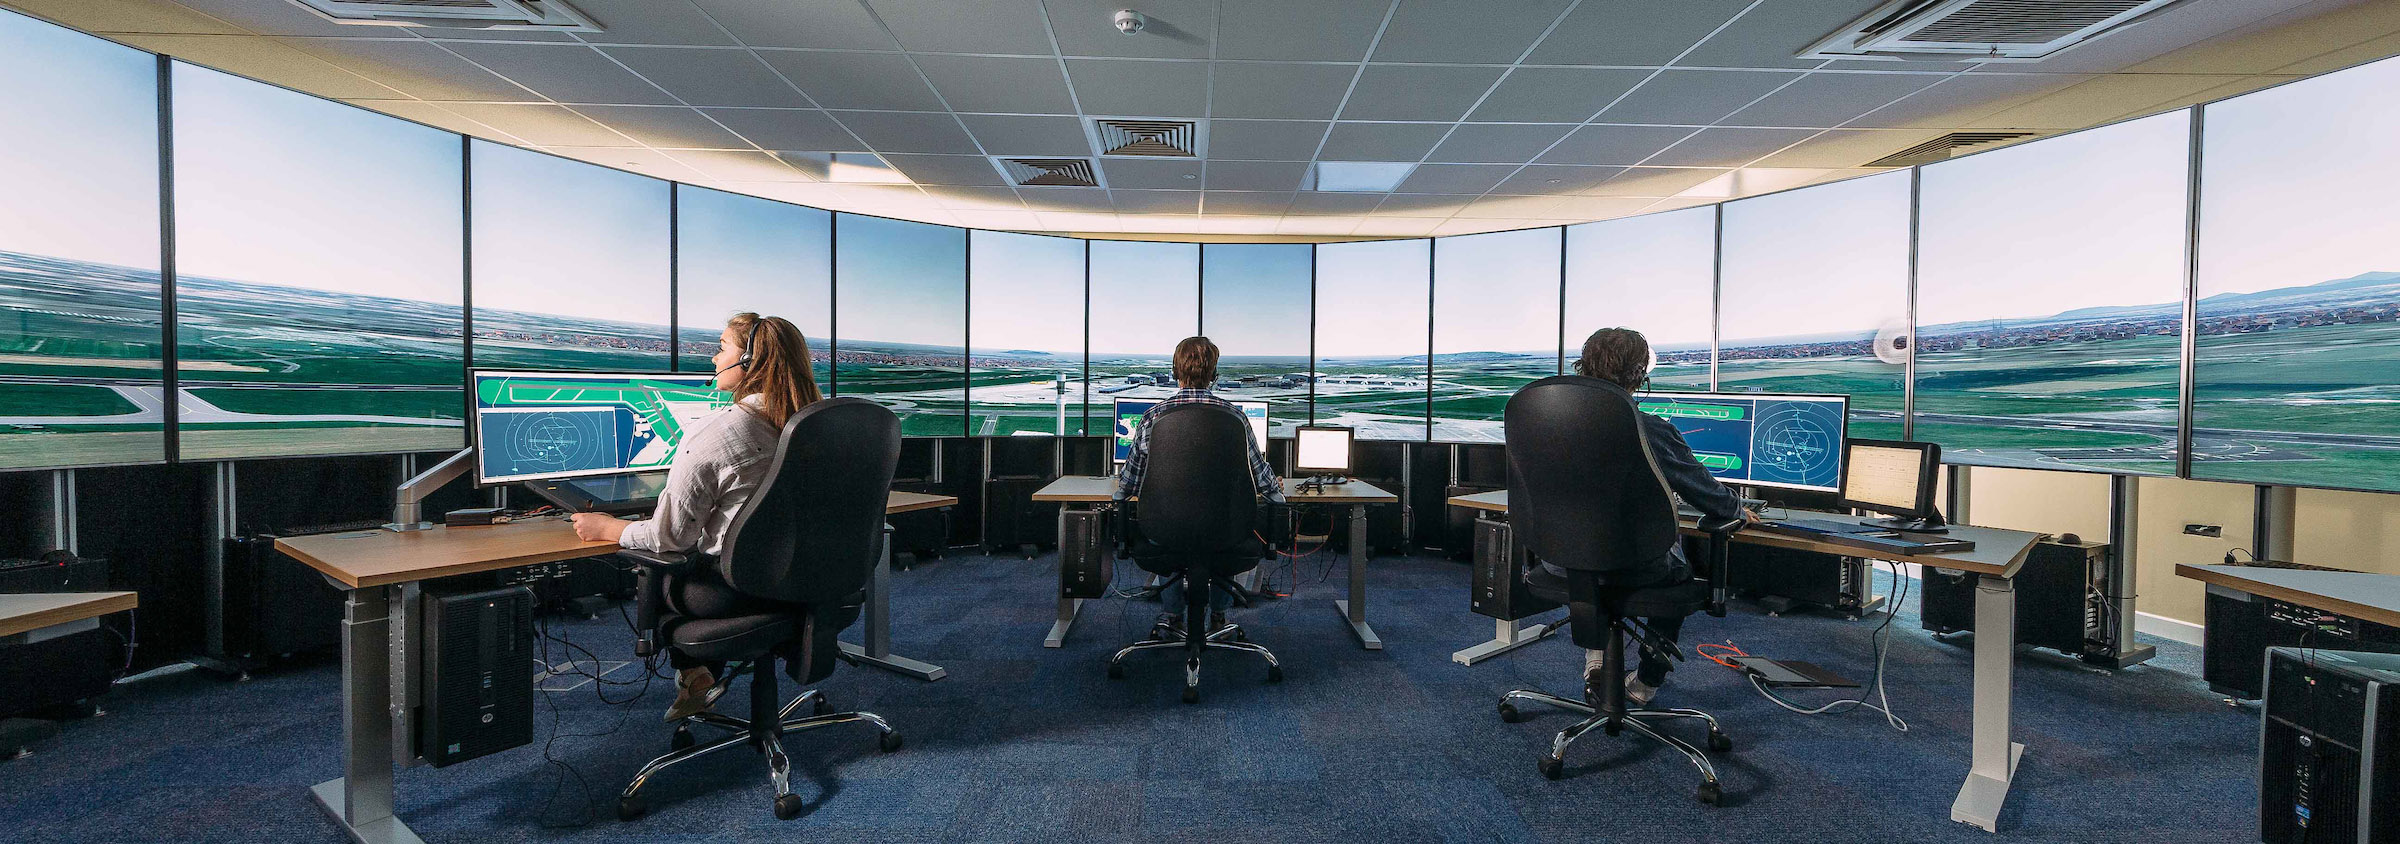 #876A44 New State Of The Art Air Traffic Control Tower Simulator  Most Effective 8445 Air Conditioning Course Ireland pictures with 2400x844 px on helpvideos.info - Air Conditioners, Air Coolers and more